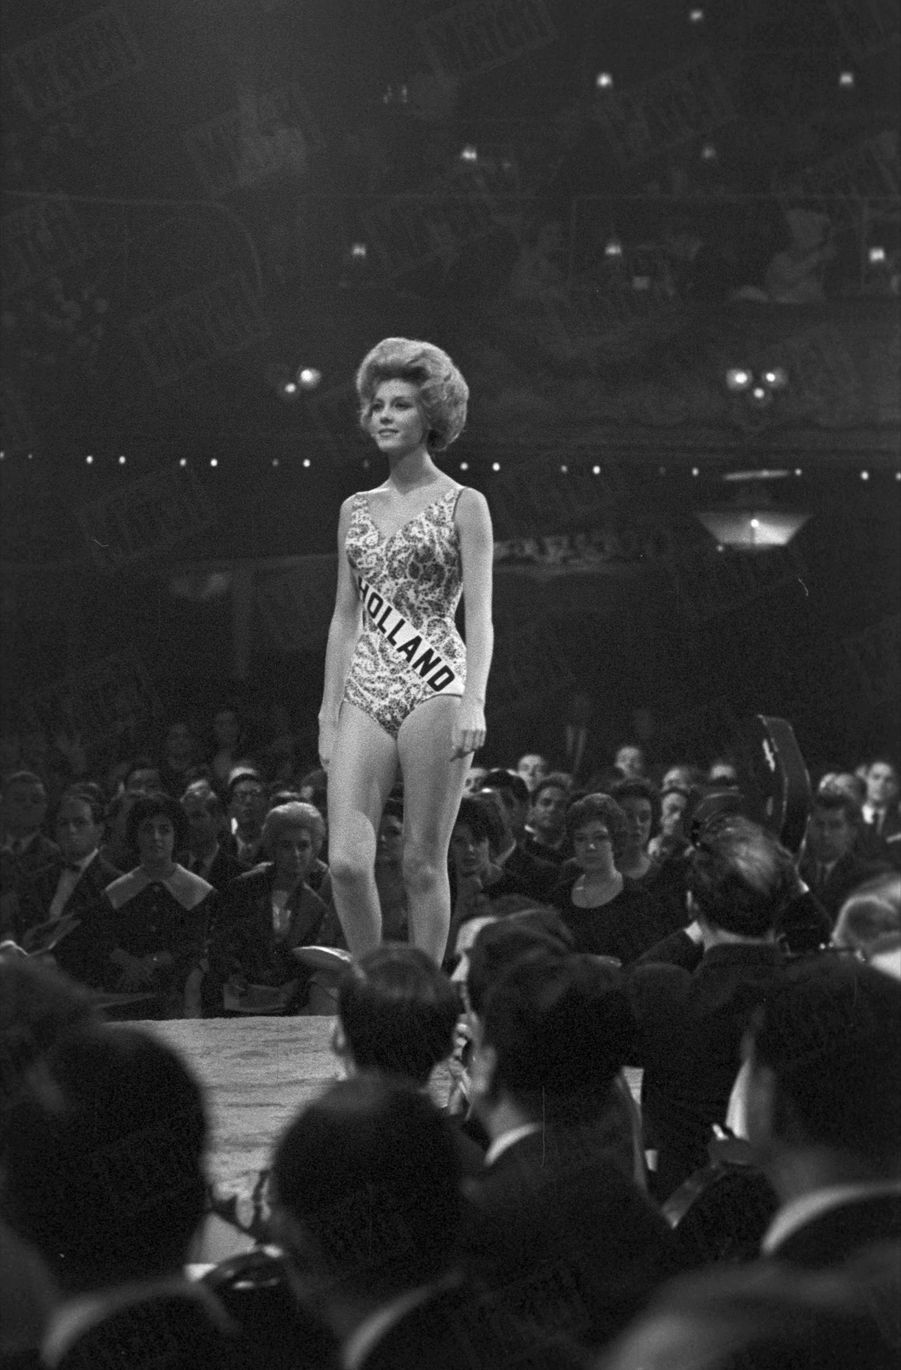 Corine Rottschäfer, Miss Hollande